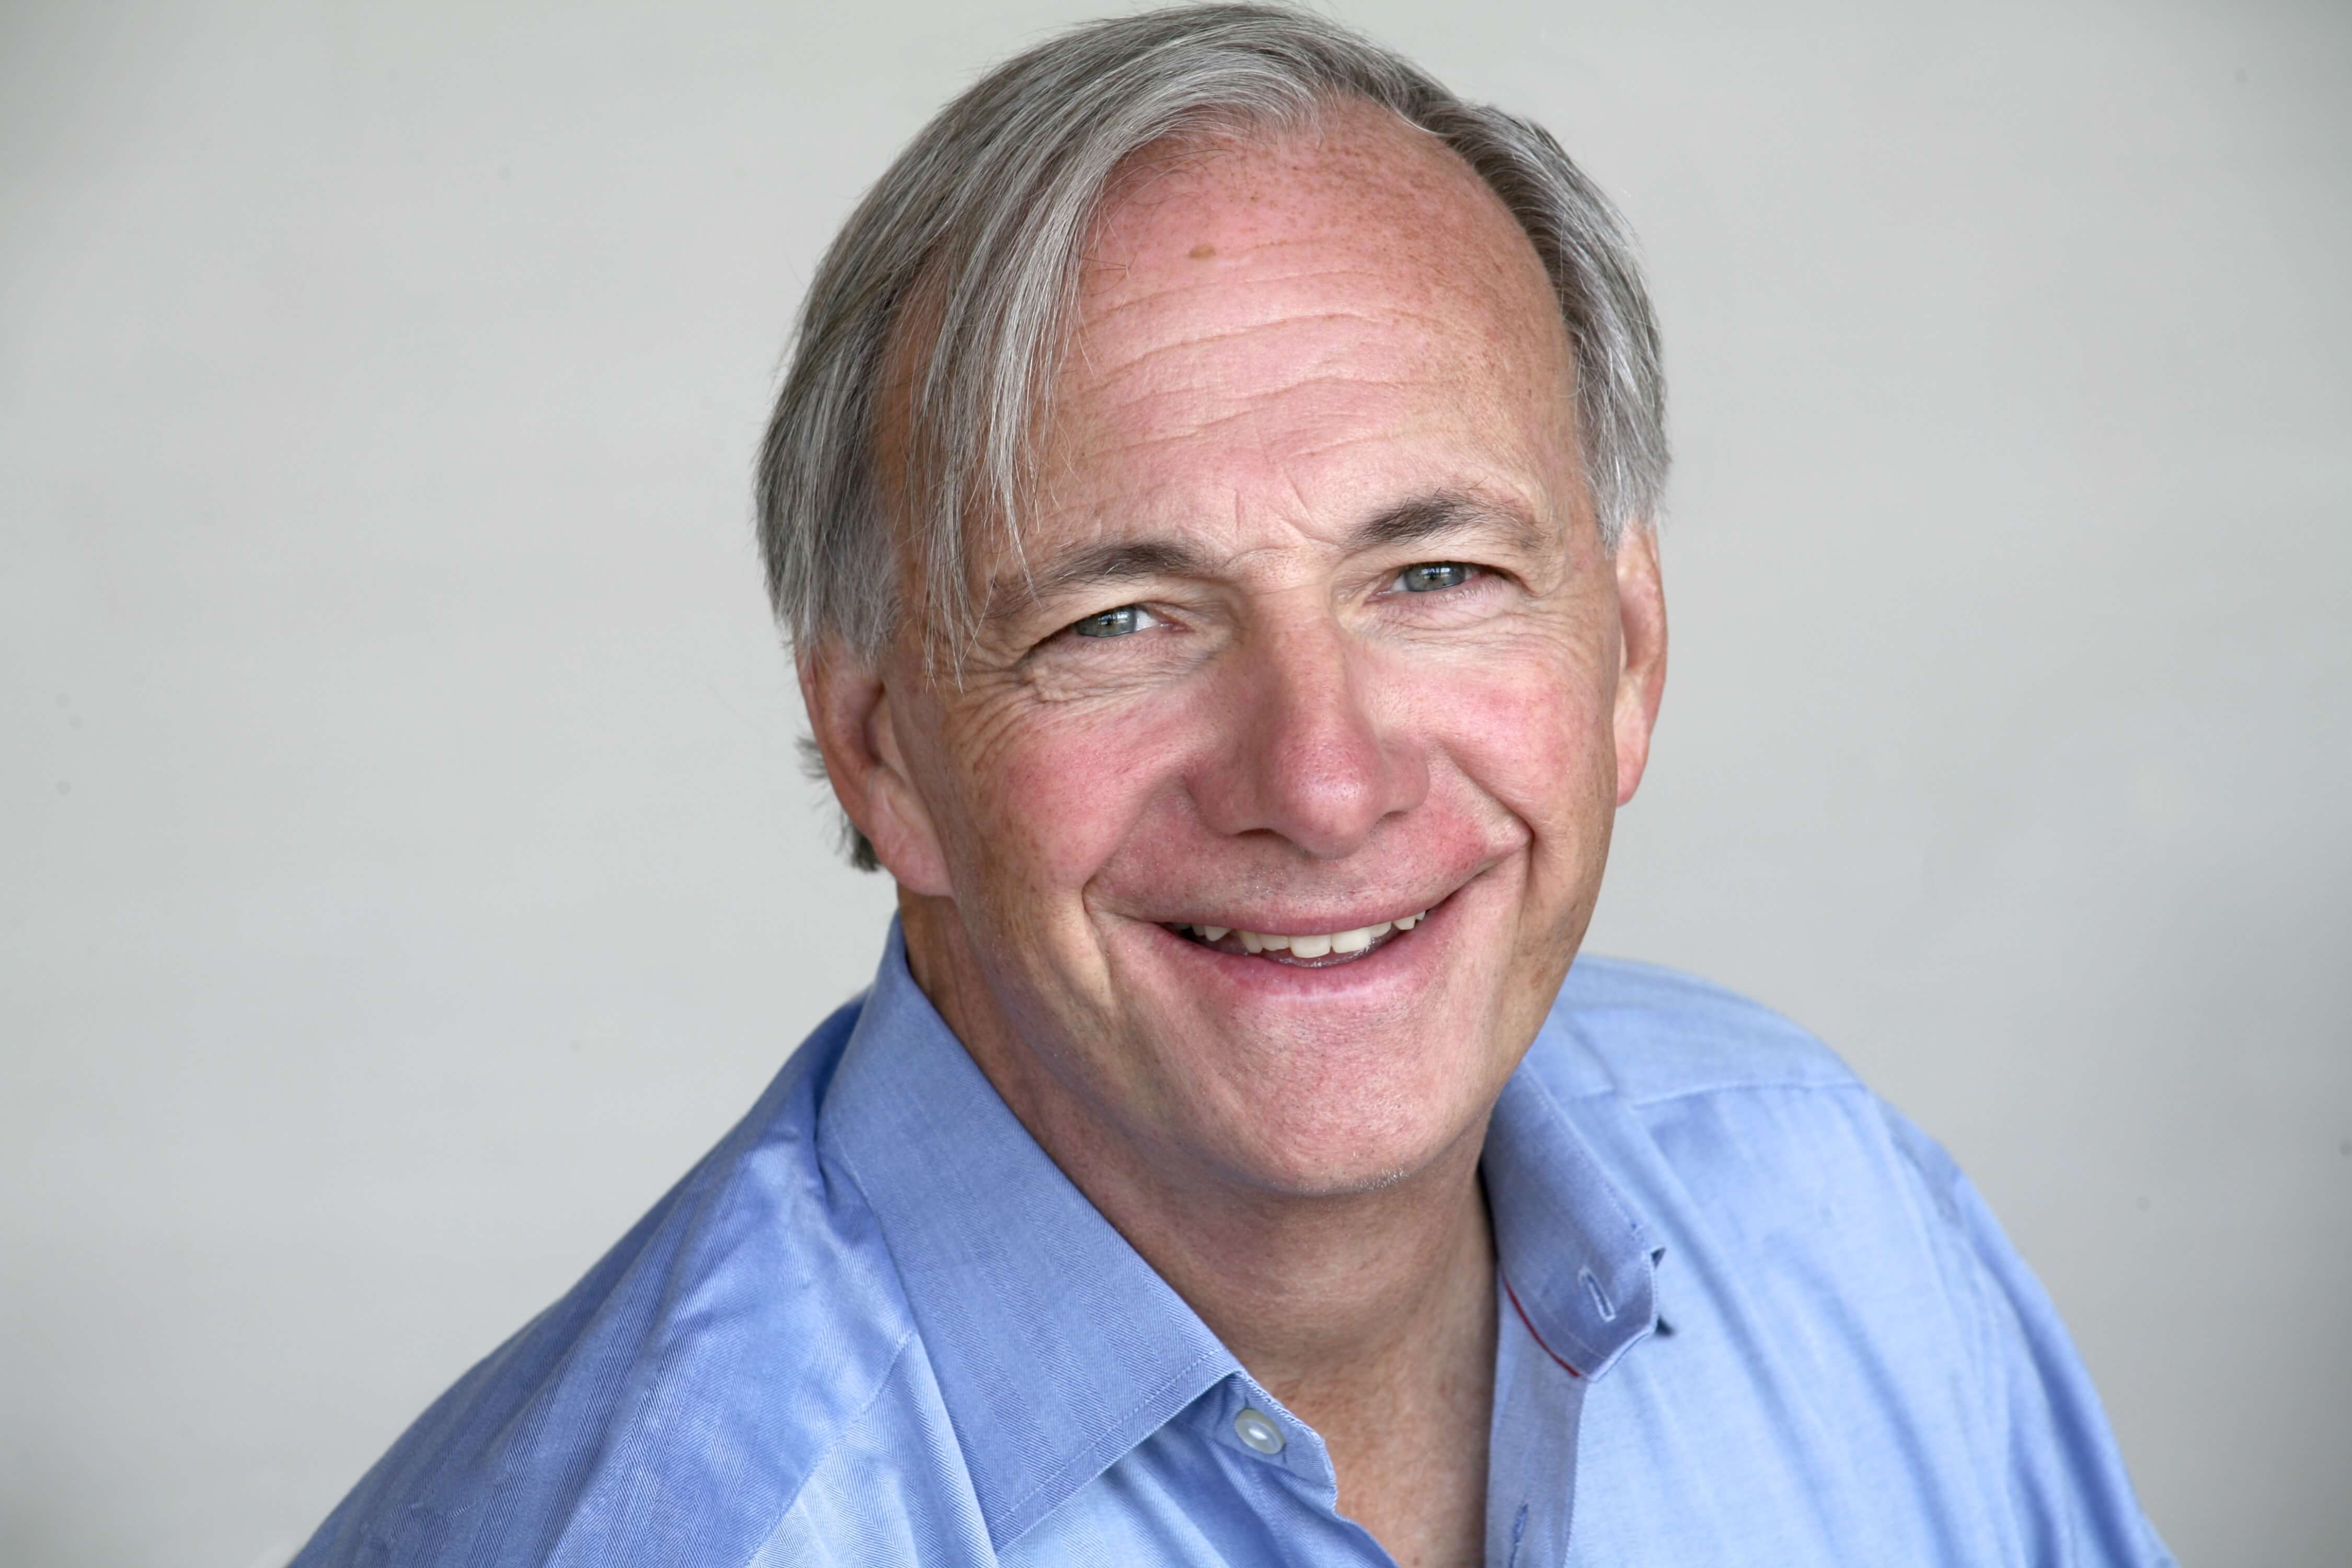 Ray Dalio sat down with the Brew to discuss his book and upcoming workplace tools.  Ray Dalio